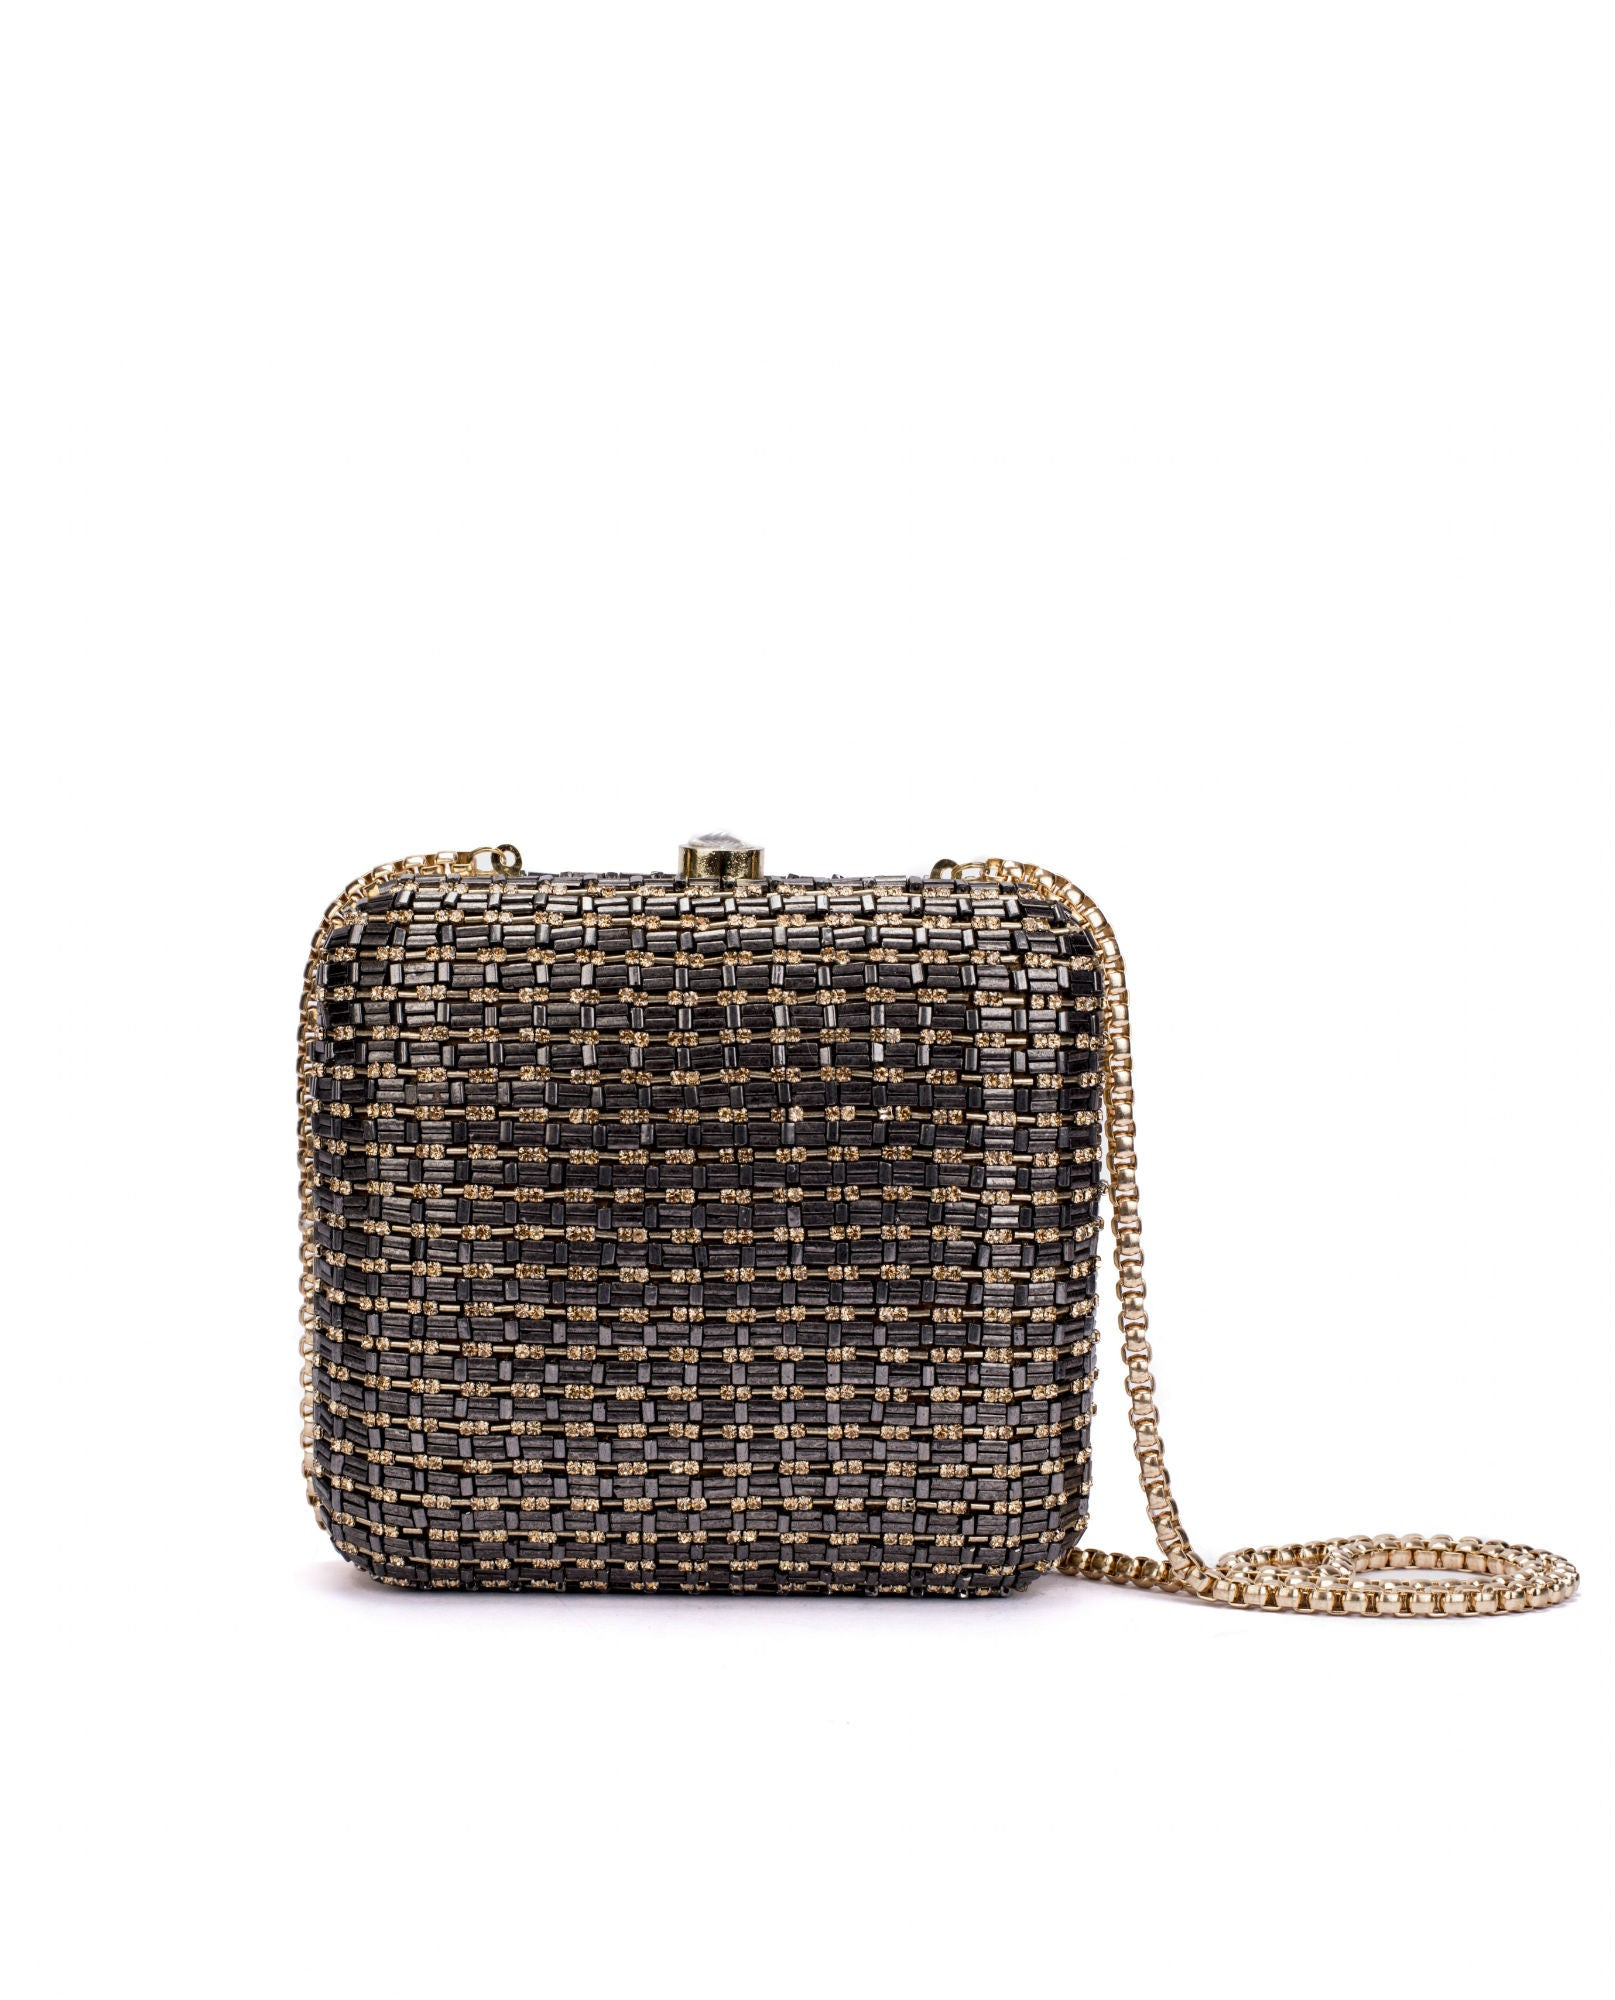 ruche & hues - Metallic Bling Minaudière (Limited Edition) - The Velvet Closet - 1